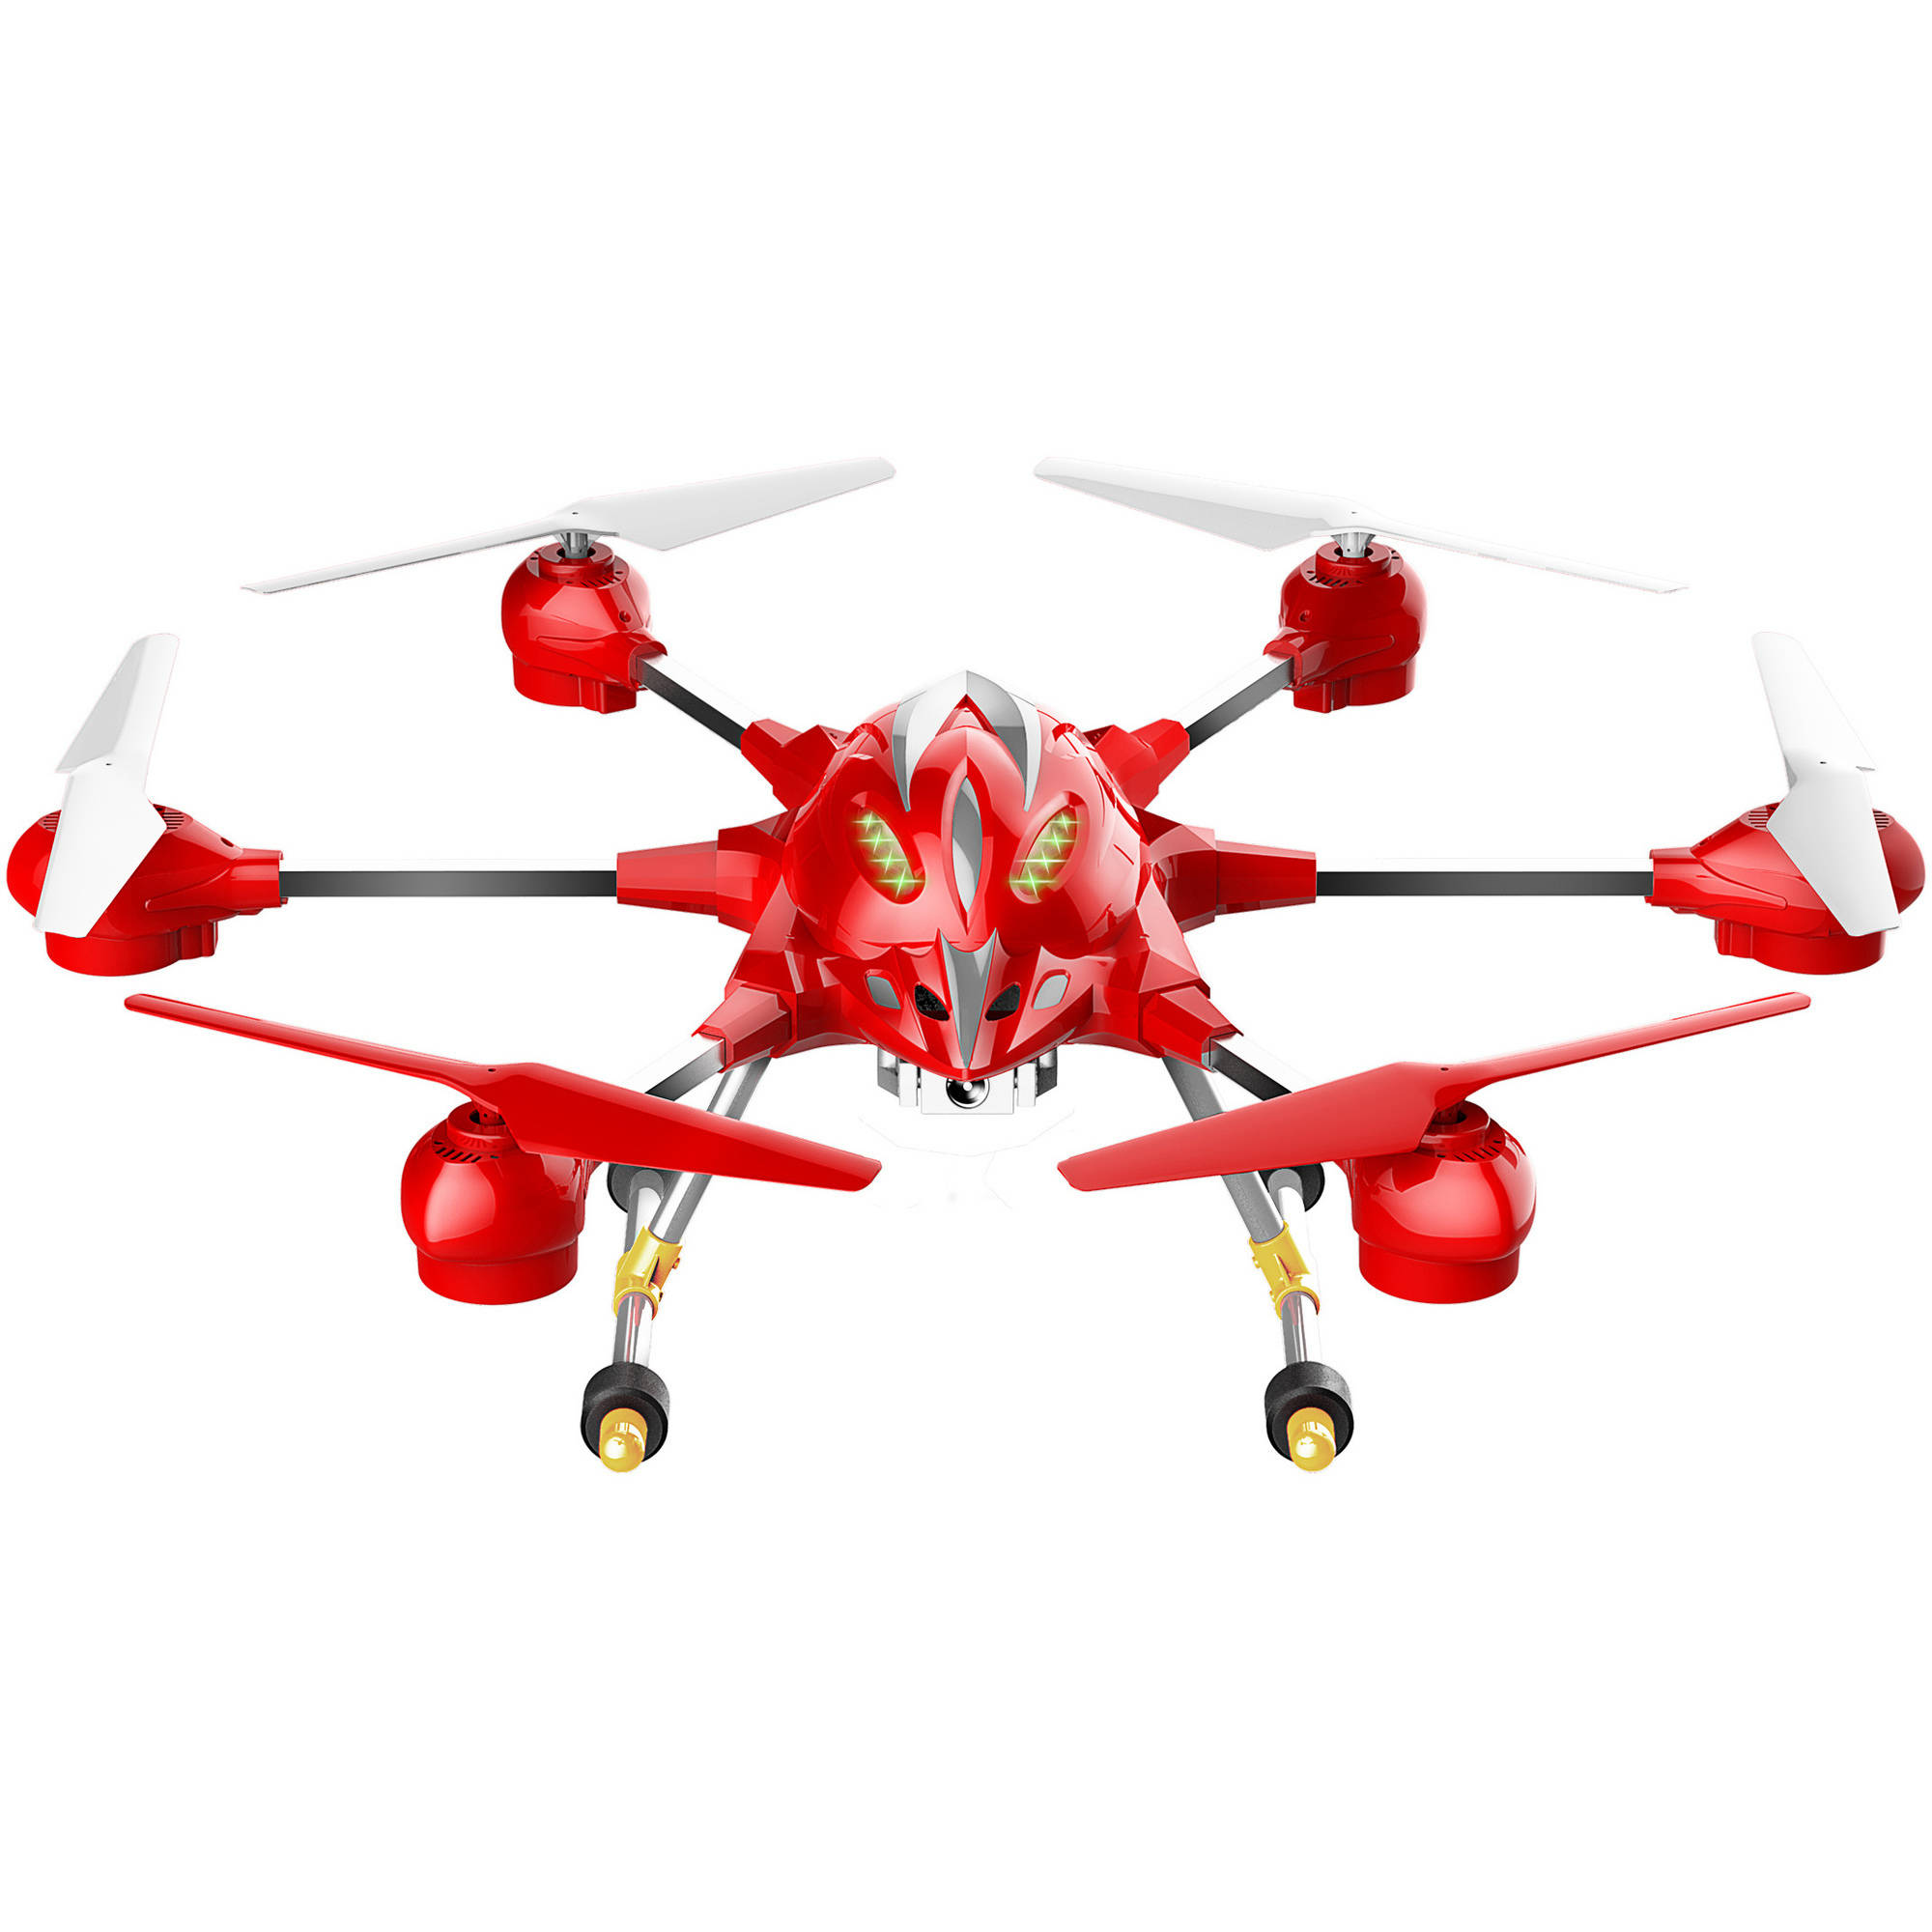 Creative Sourcing International Riviera RC Pathfinder Hexacopter WiFi Drone, Red